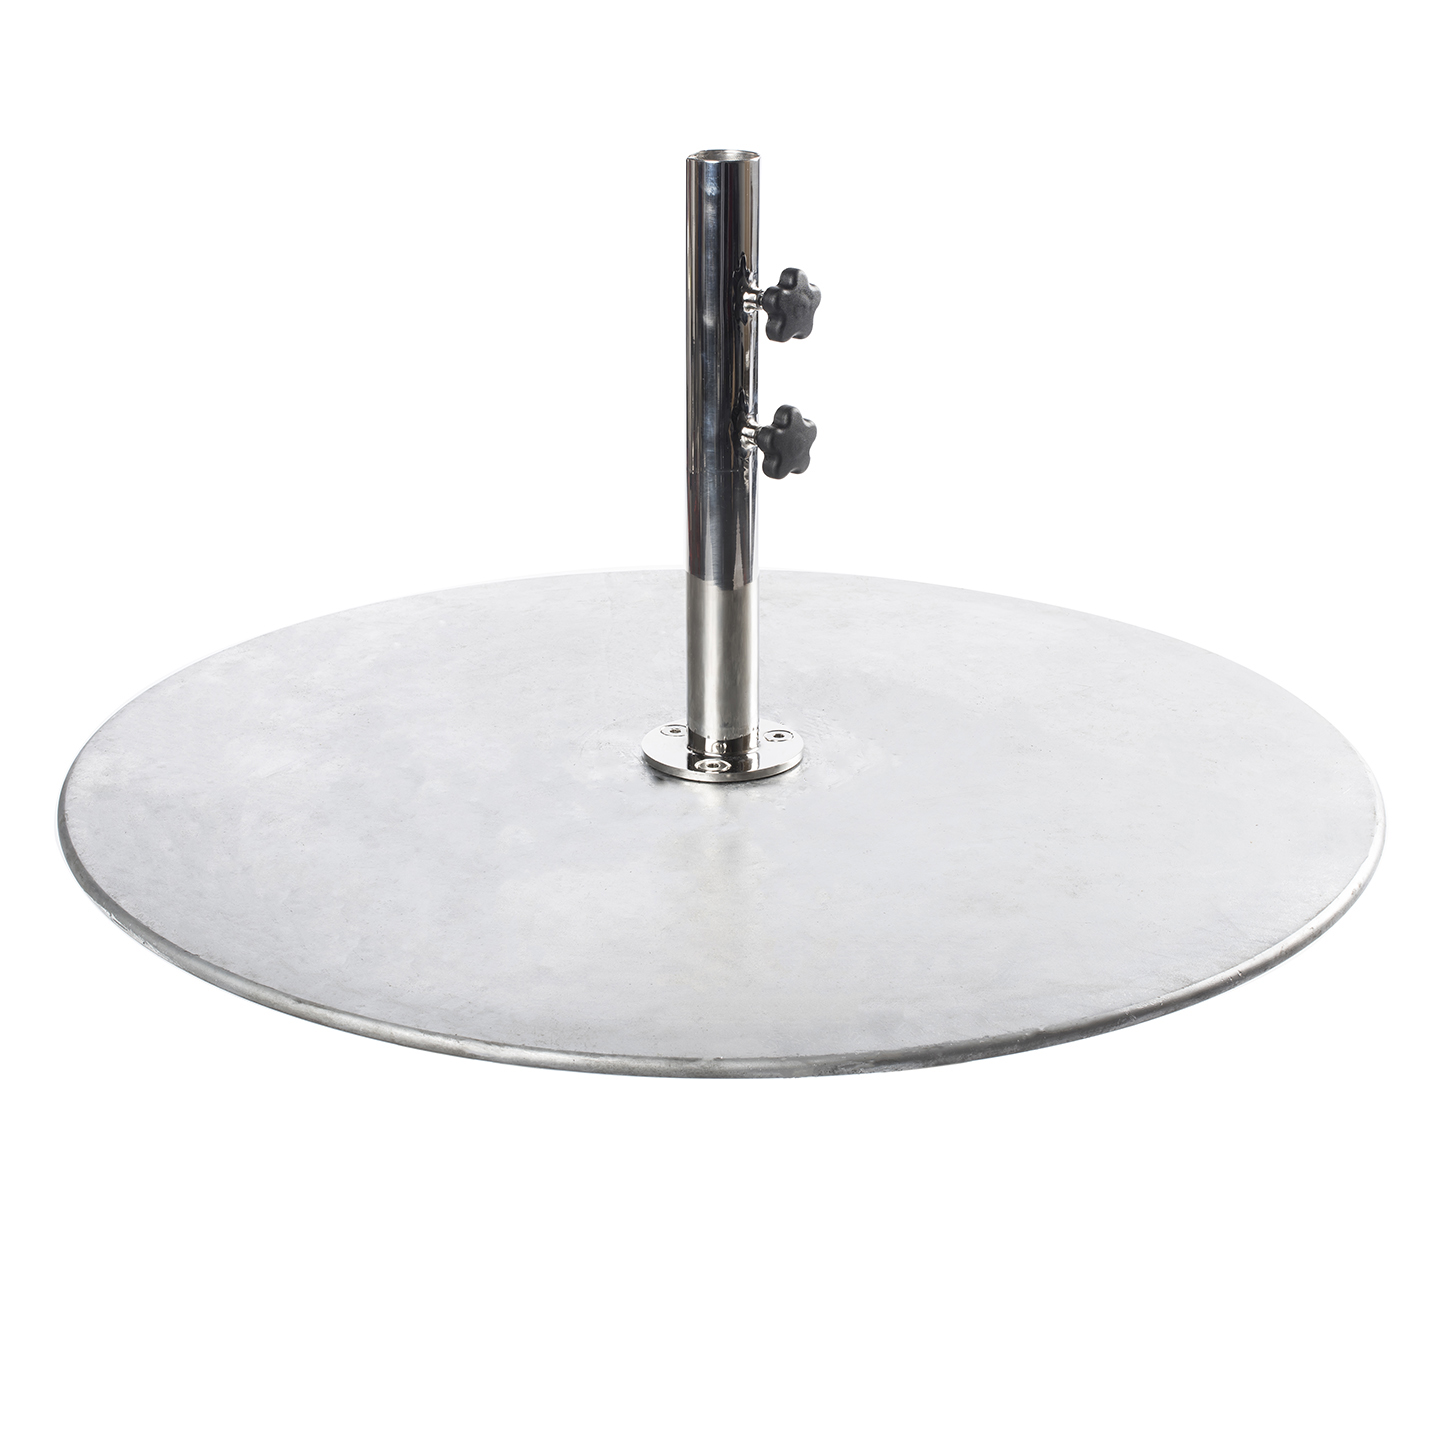 36″ Round Galvanized Steel Plate Base